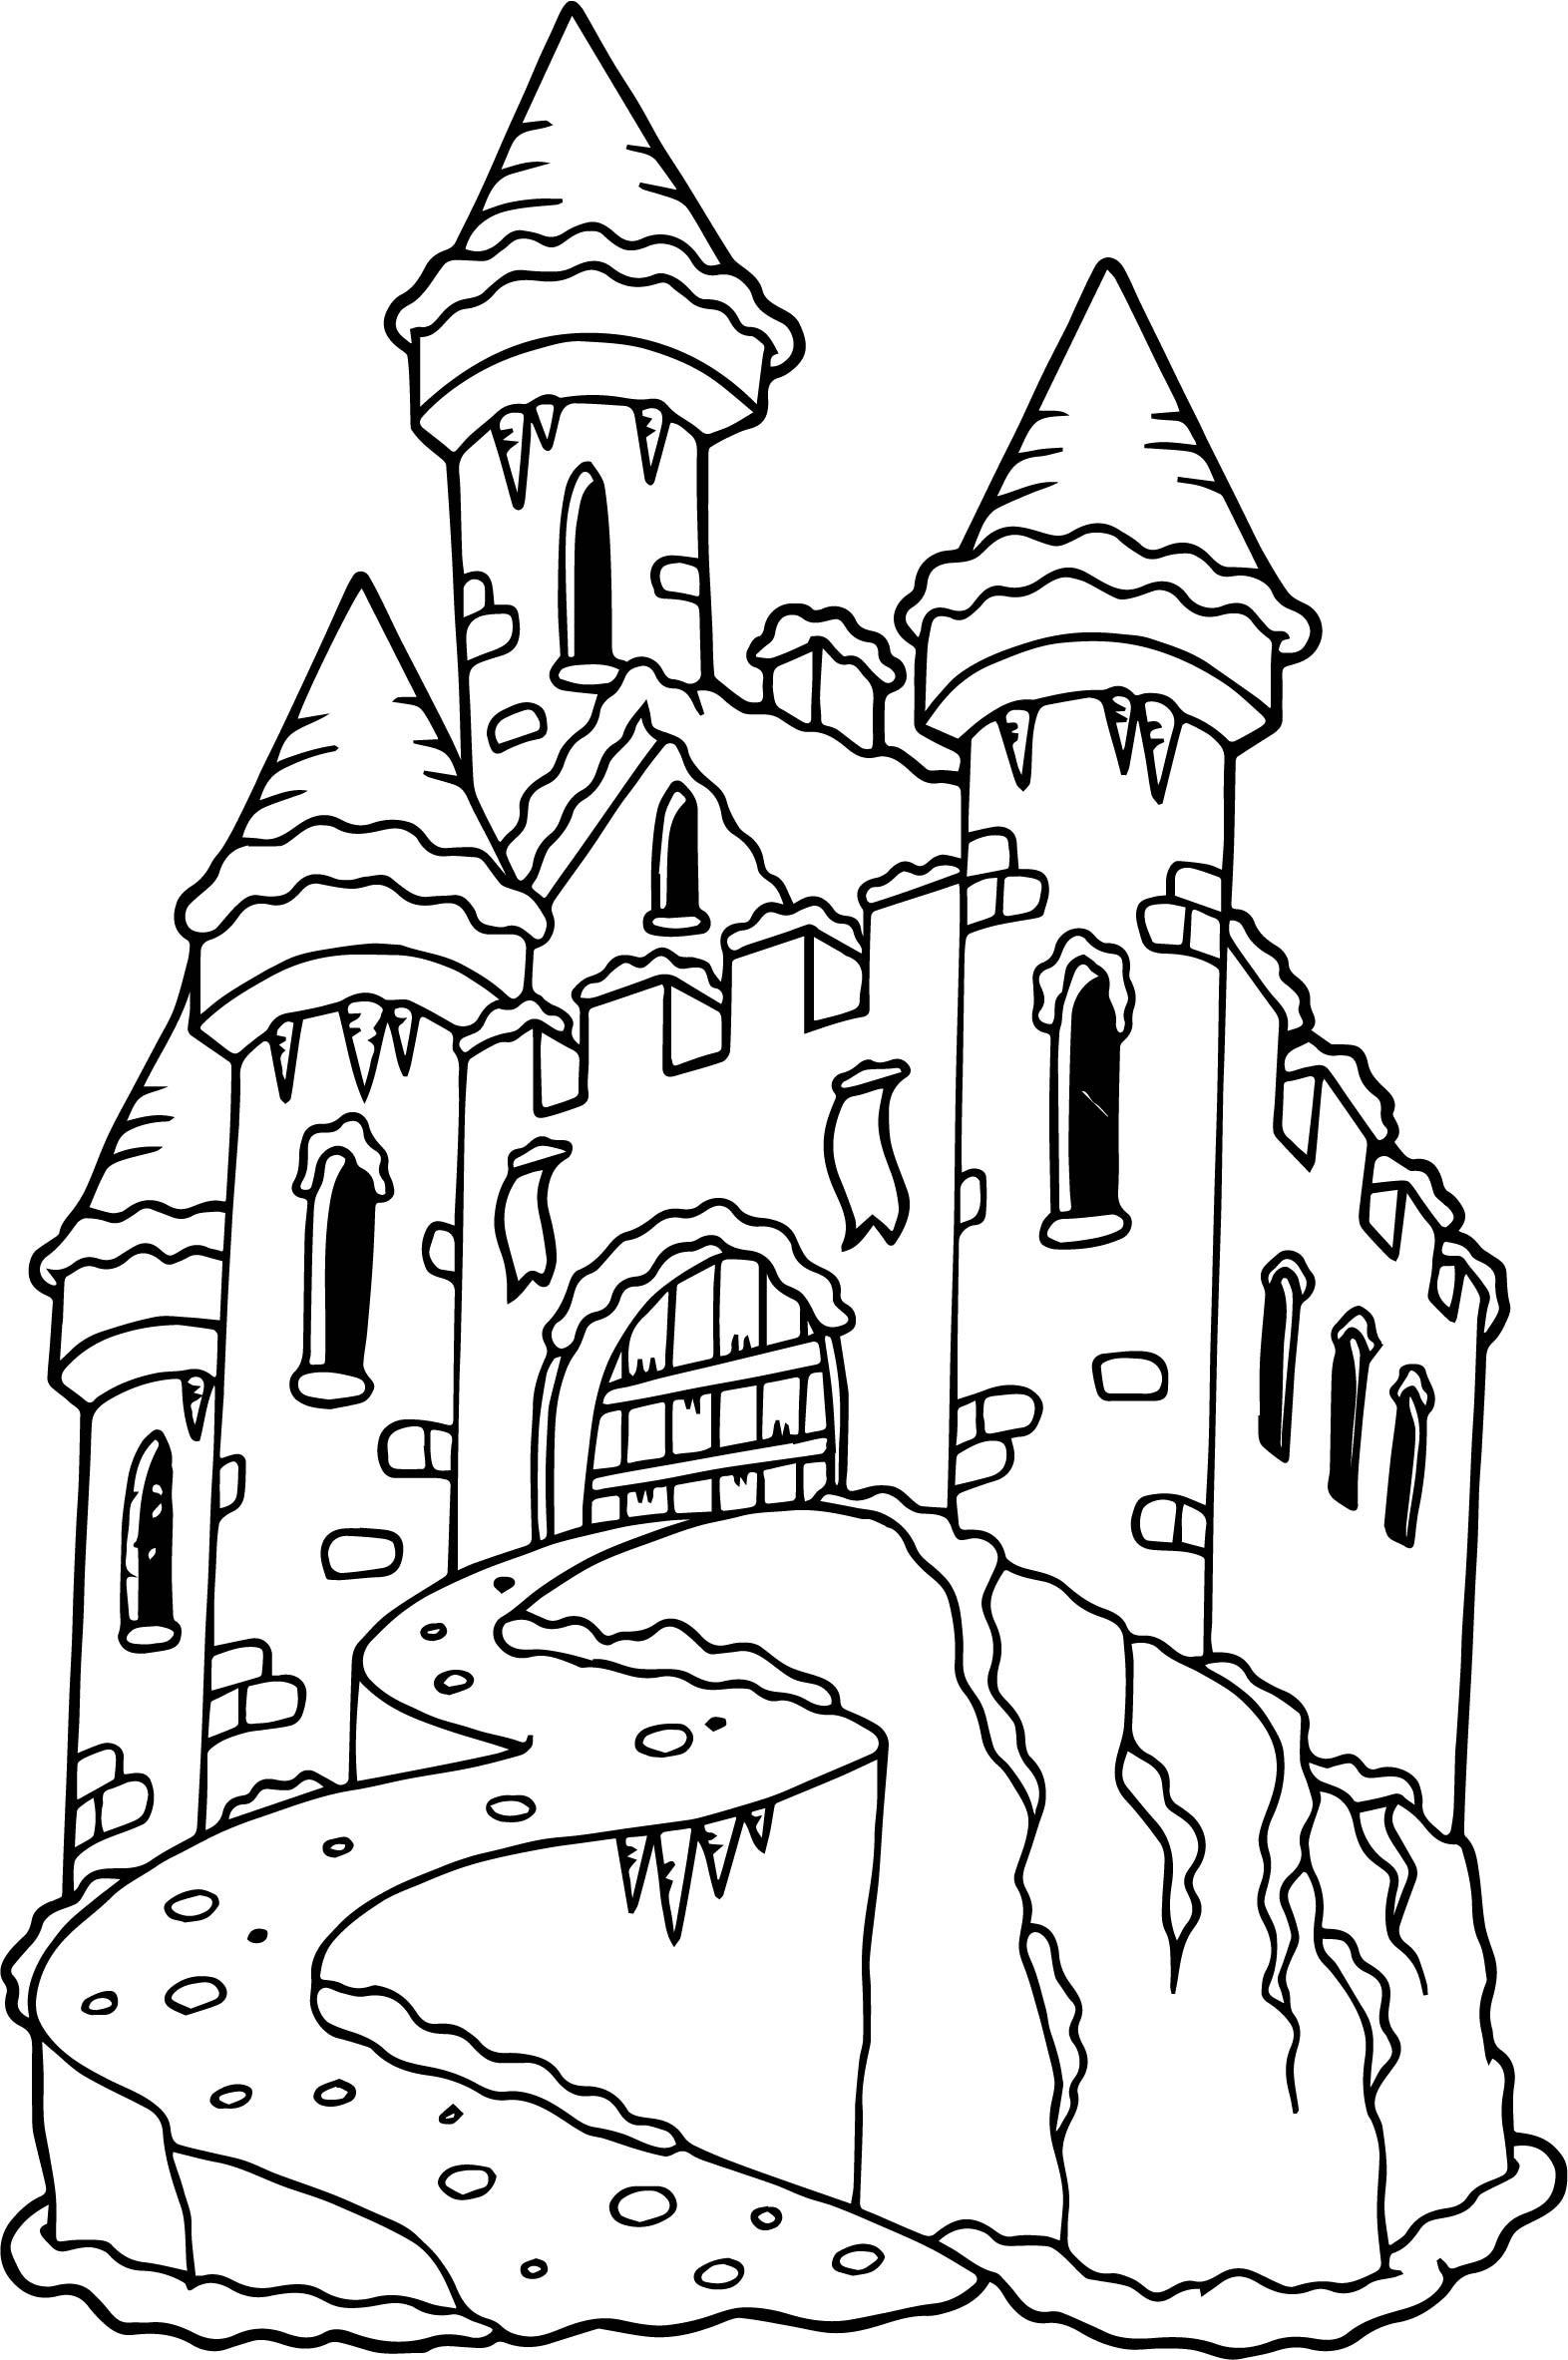 Lego Castle Coloring Pages At Getcolorings